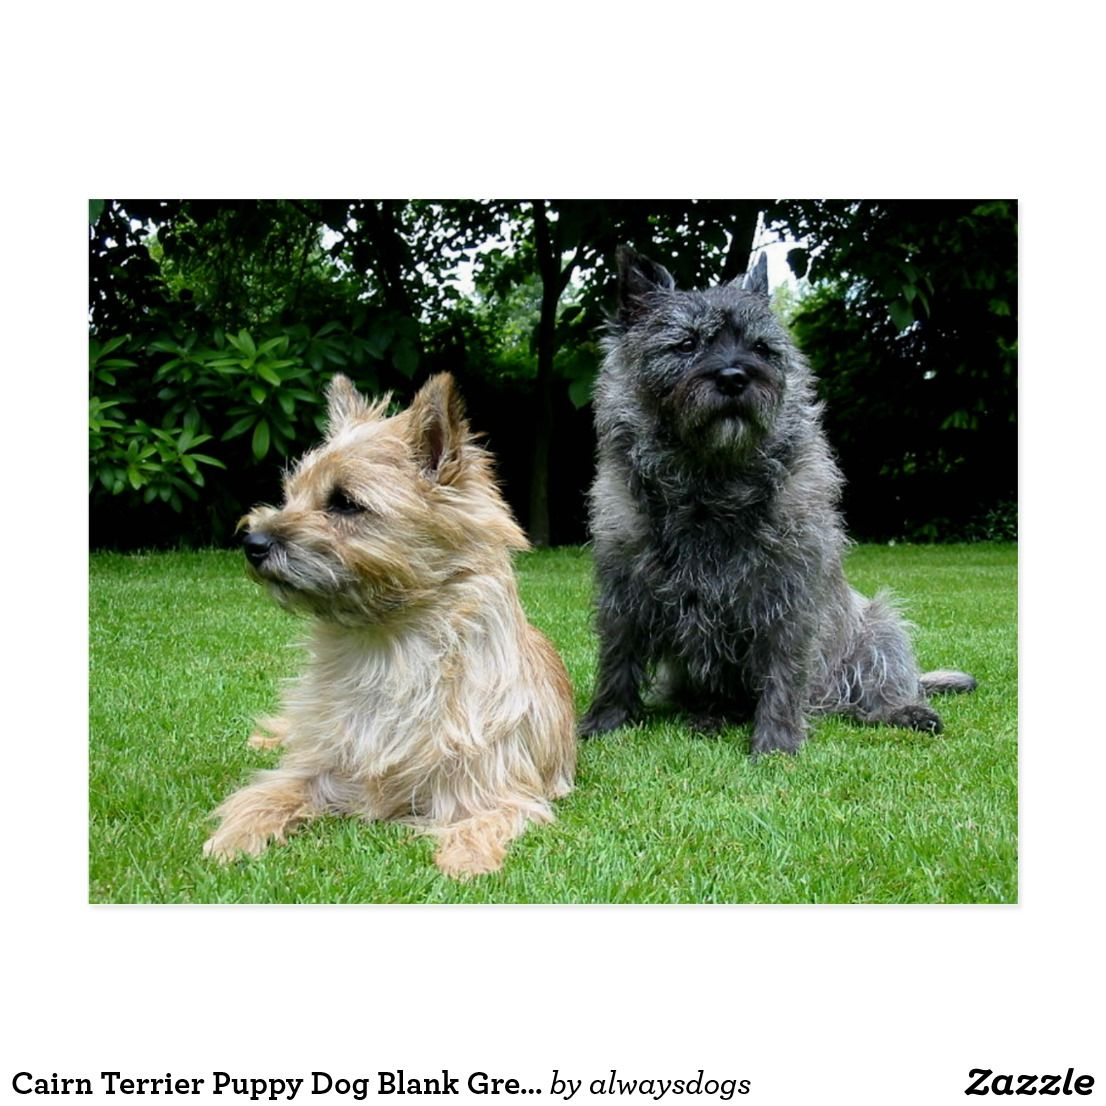 Cairn Terrier Puppy Dog Blank Greeting Post Card Zazzle Com